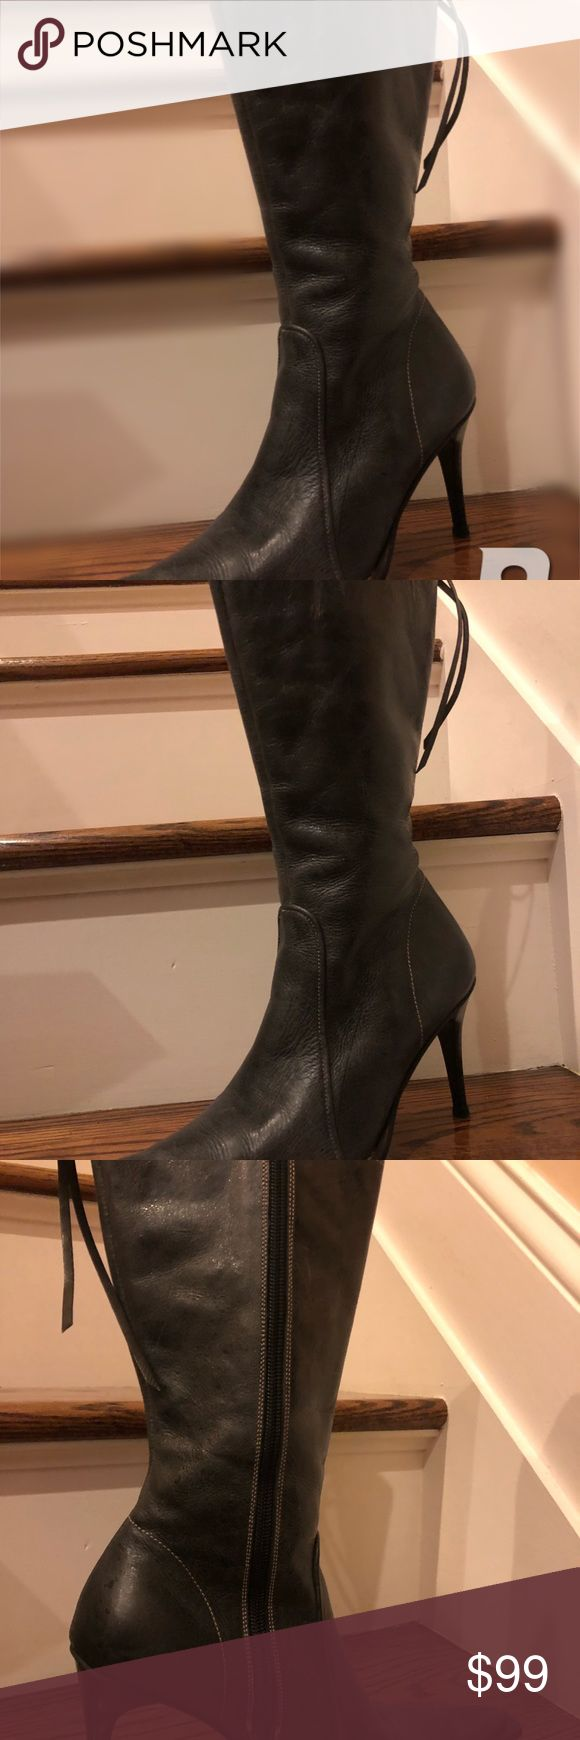 Colombian dark gray leather boots 👢 size 36 Gorgeous dark gray pointy toe western style leather 👢 bosi Shoes Heeled Boots